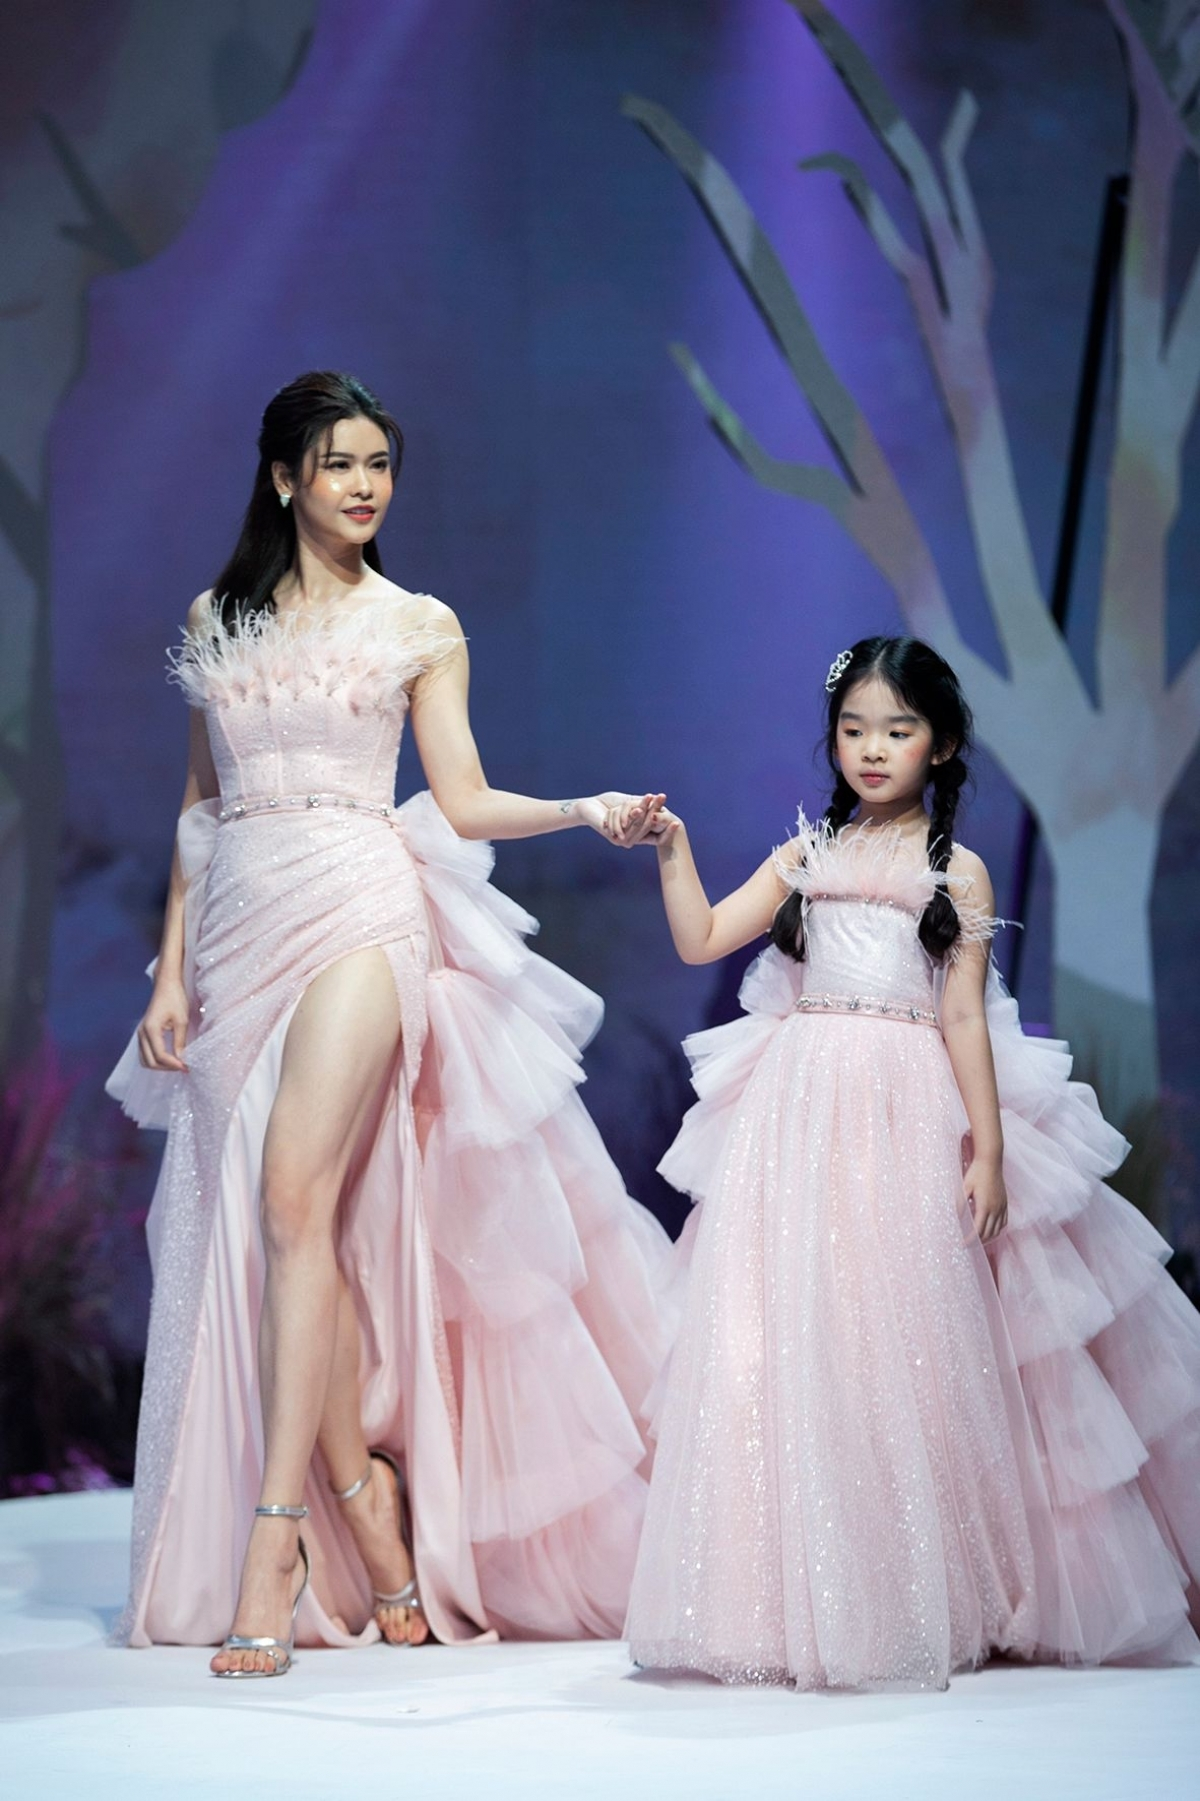 """The """"Magic Dreams"""" collection by fashion brand Joli Doll is shown at the event."""